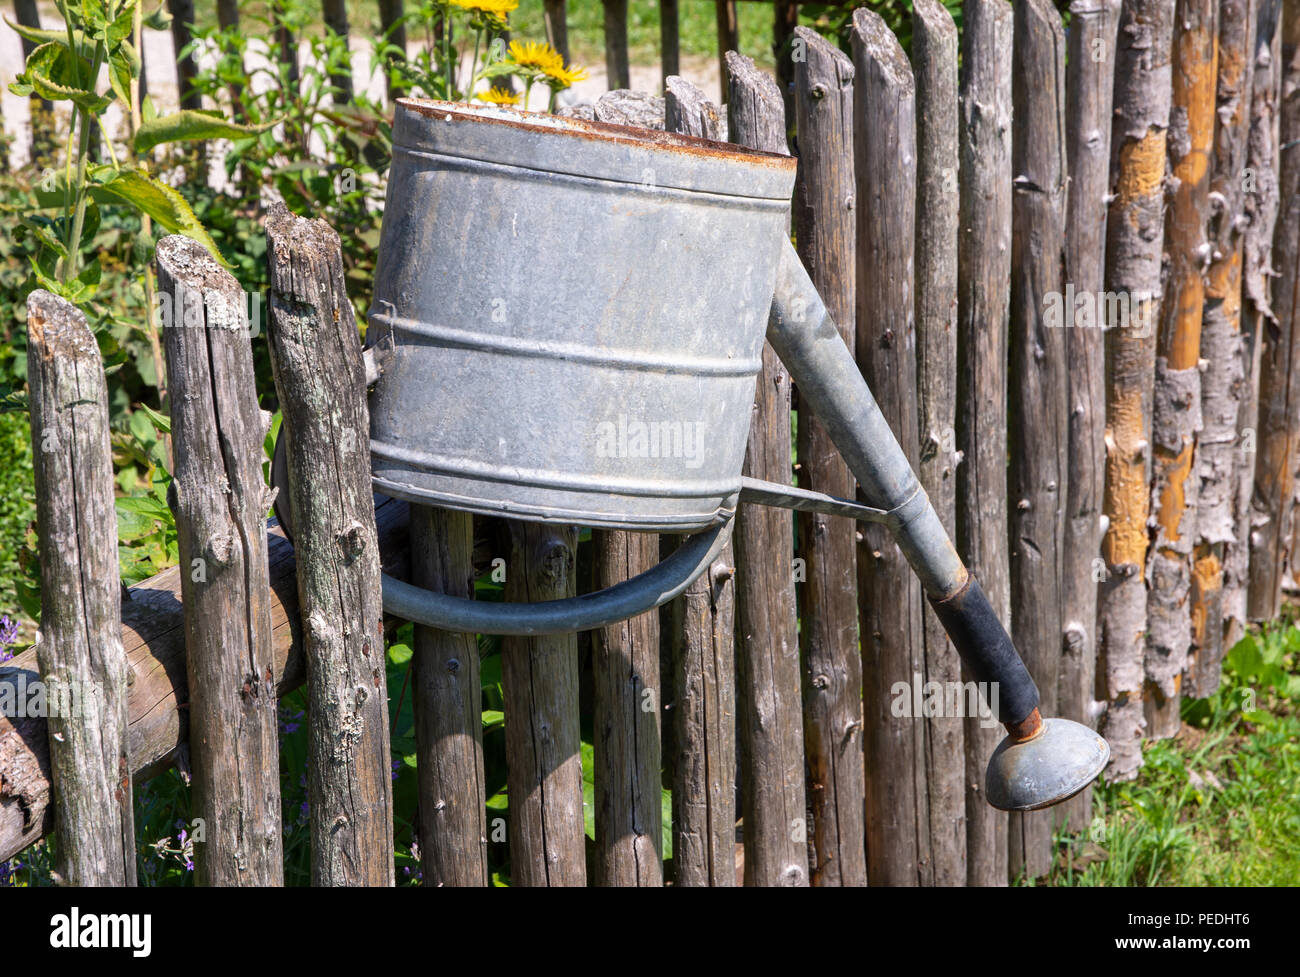 Vintage watering can on the wooden fence of a vegetable garden Stock Photo